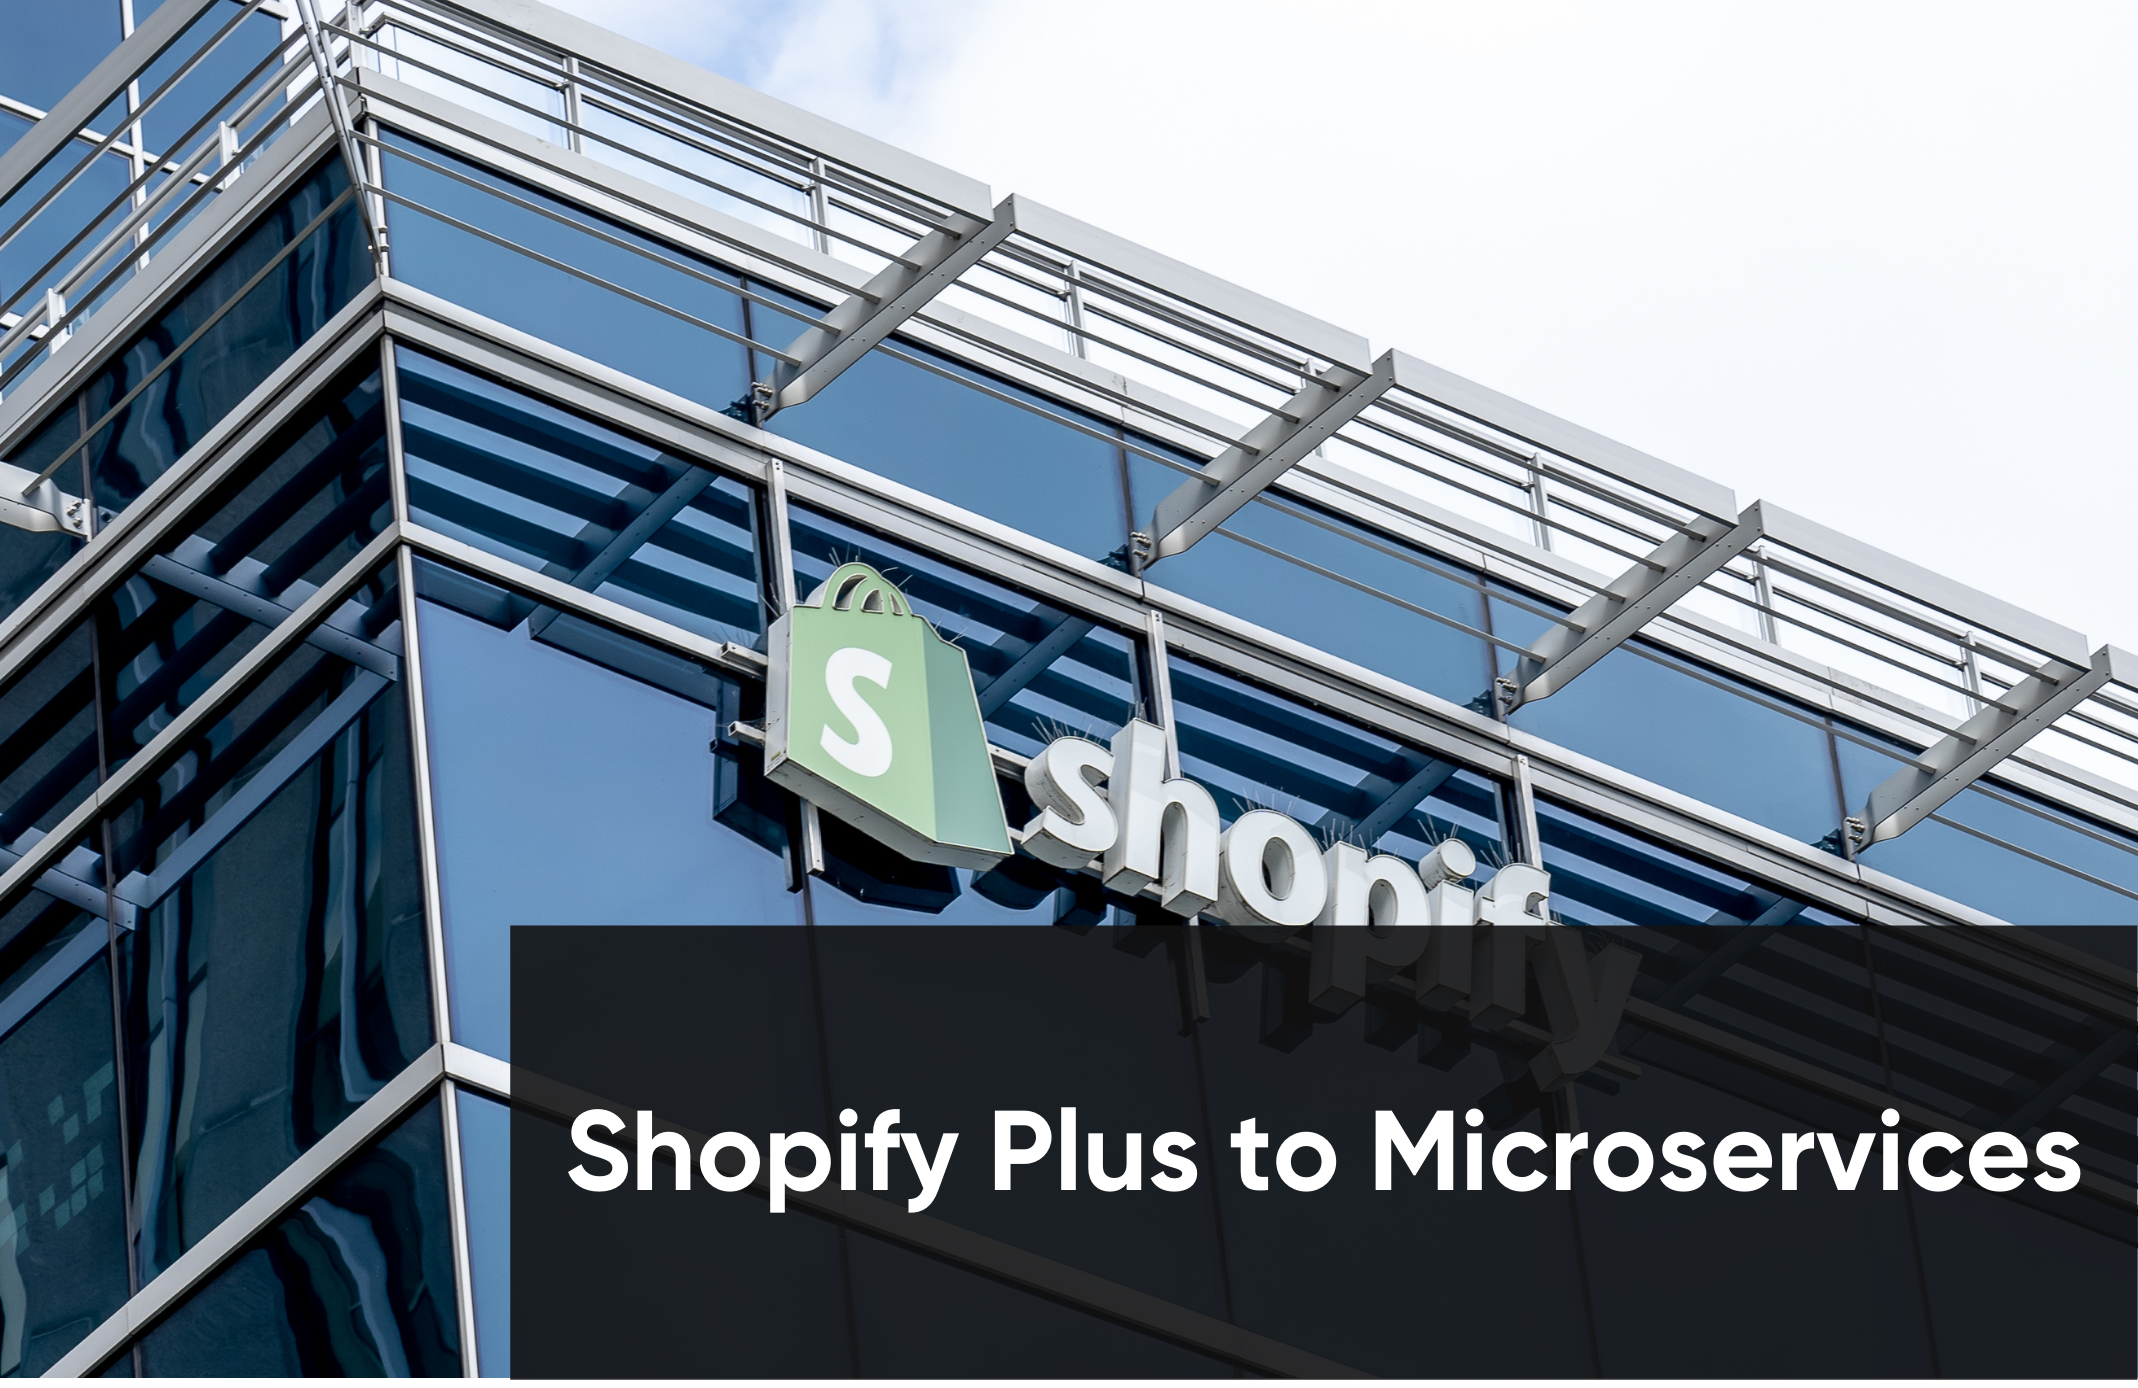 Shopify Plus to Microservices